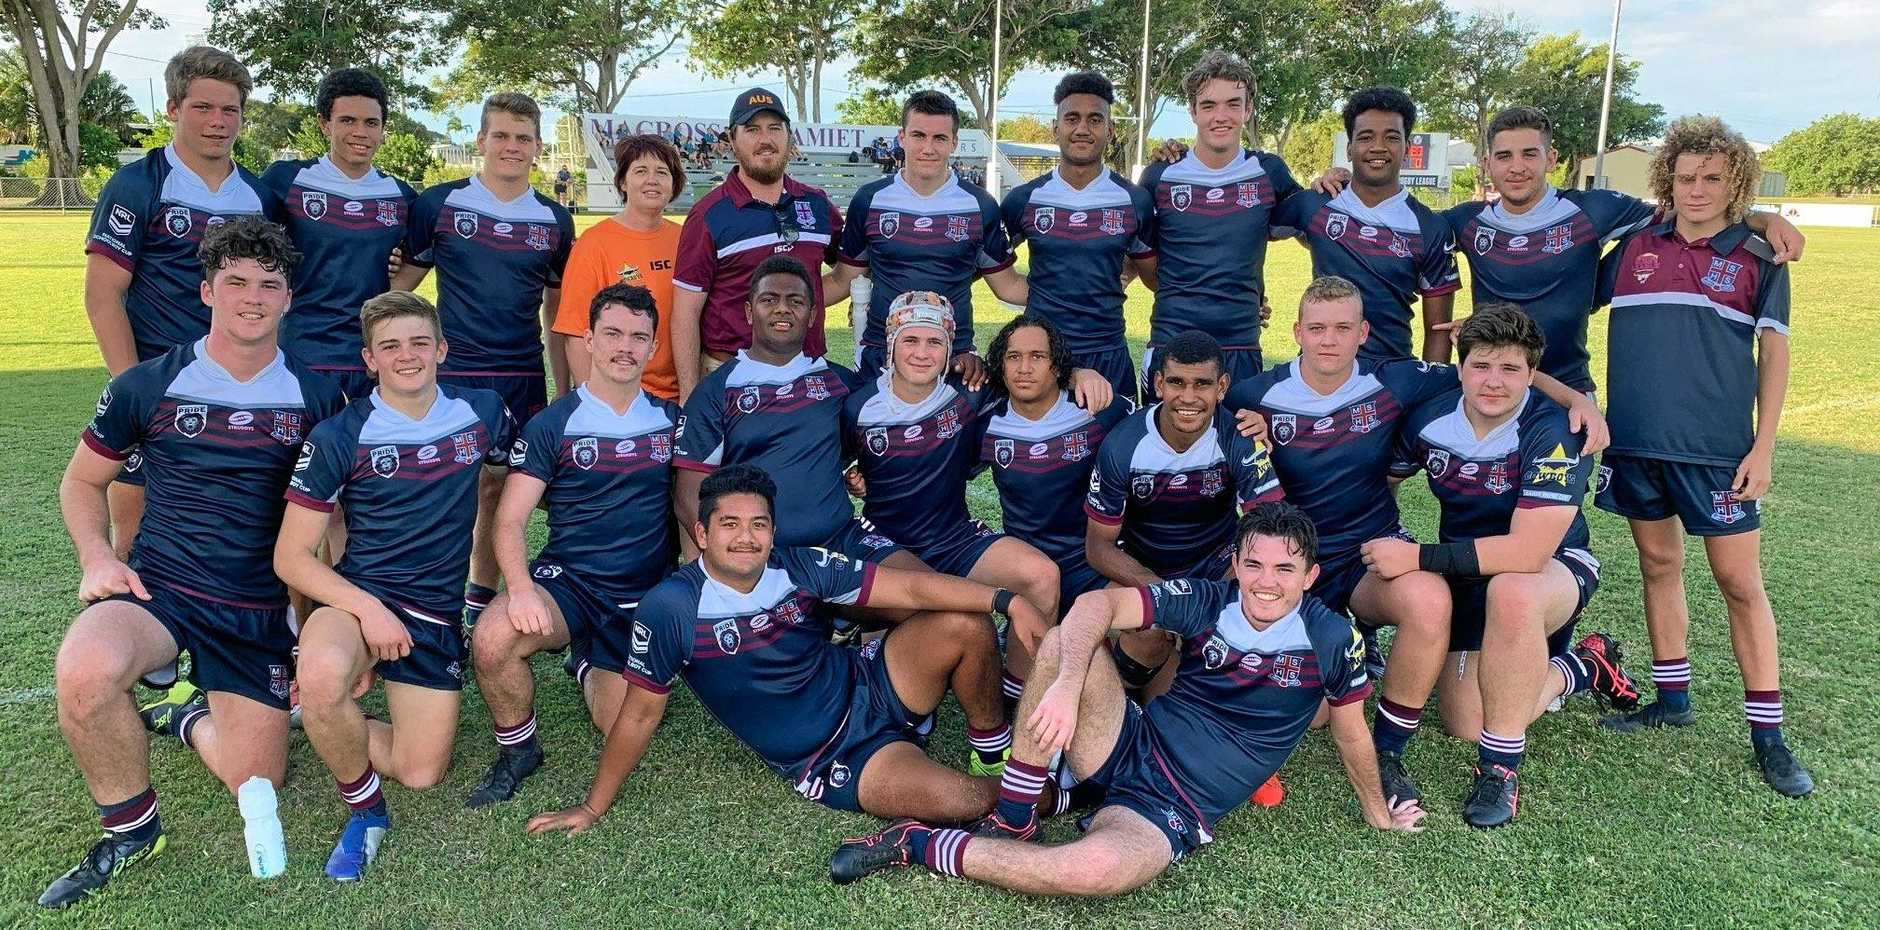 REDEMPTION: The Mackay State High School First XIII made amends for their heavy loss to St Brendan's College last year, by inflicting a 34-6 result on their Rockhampton rivals.